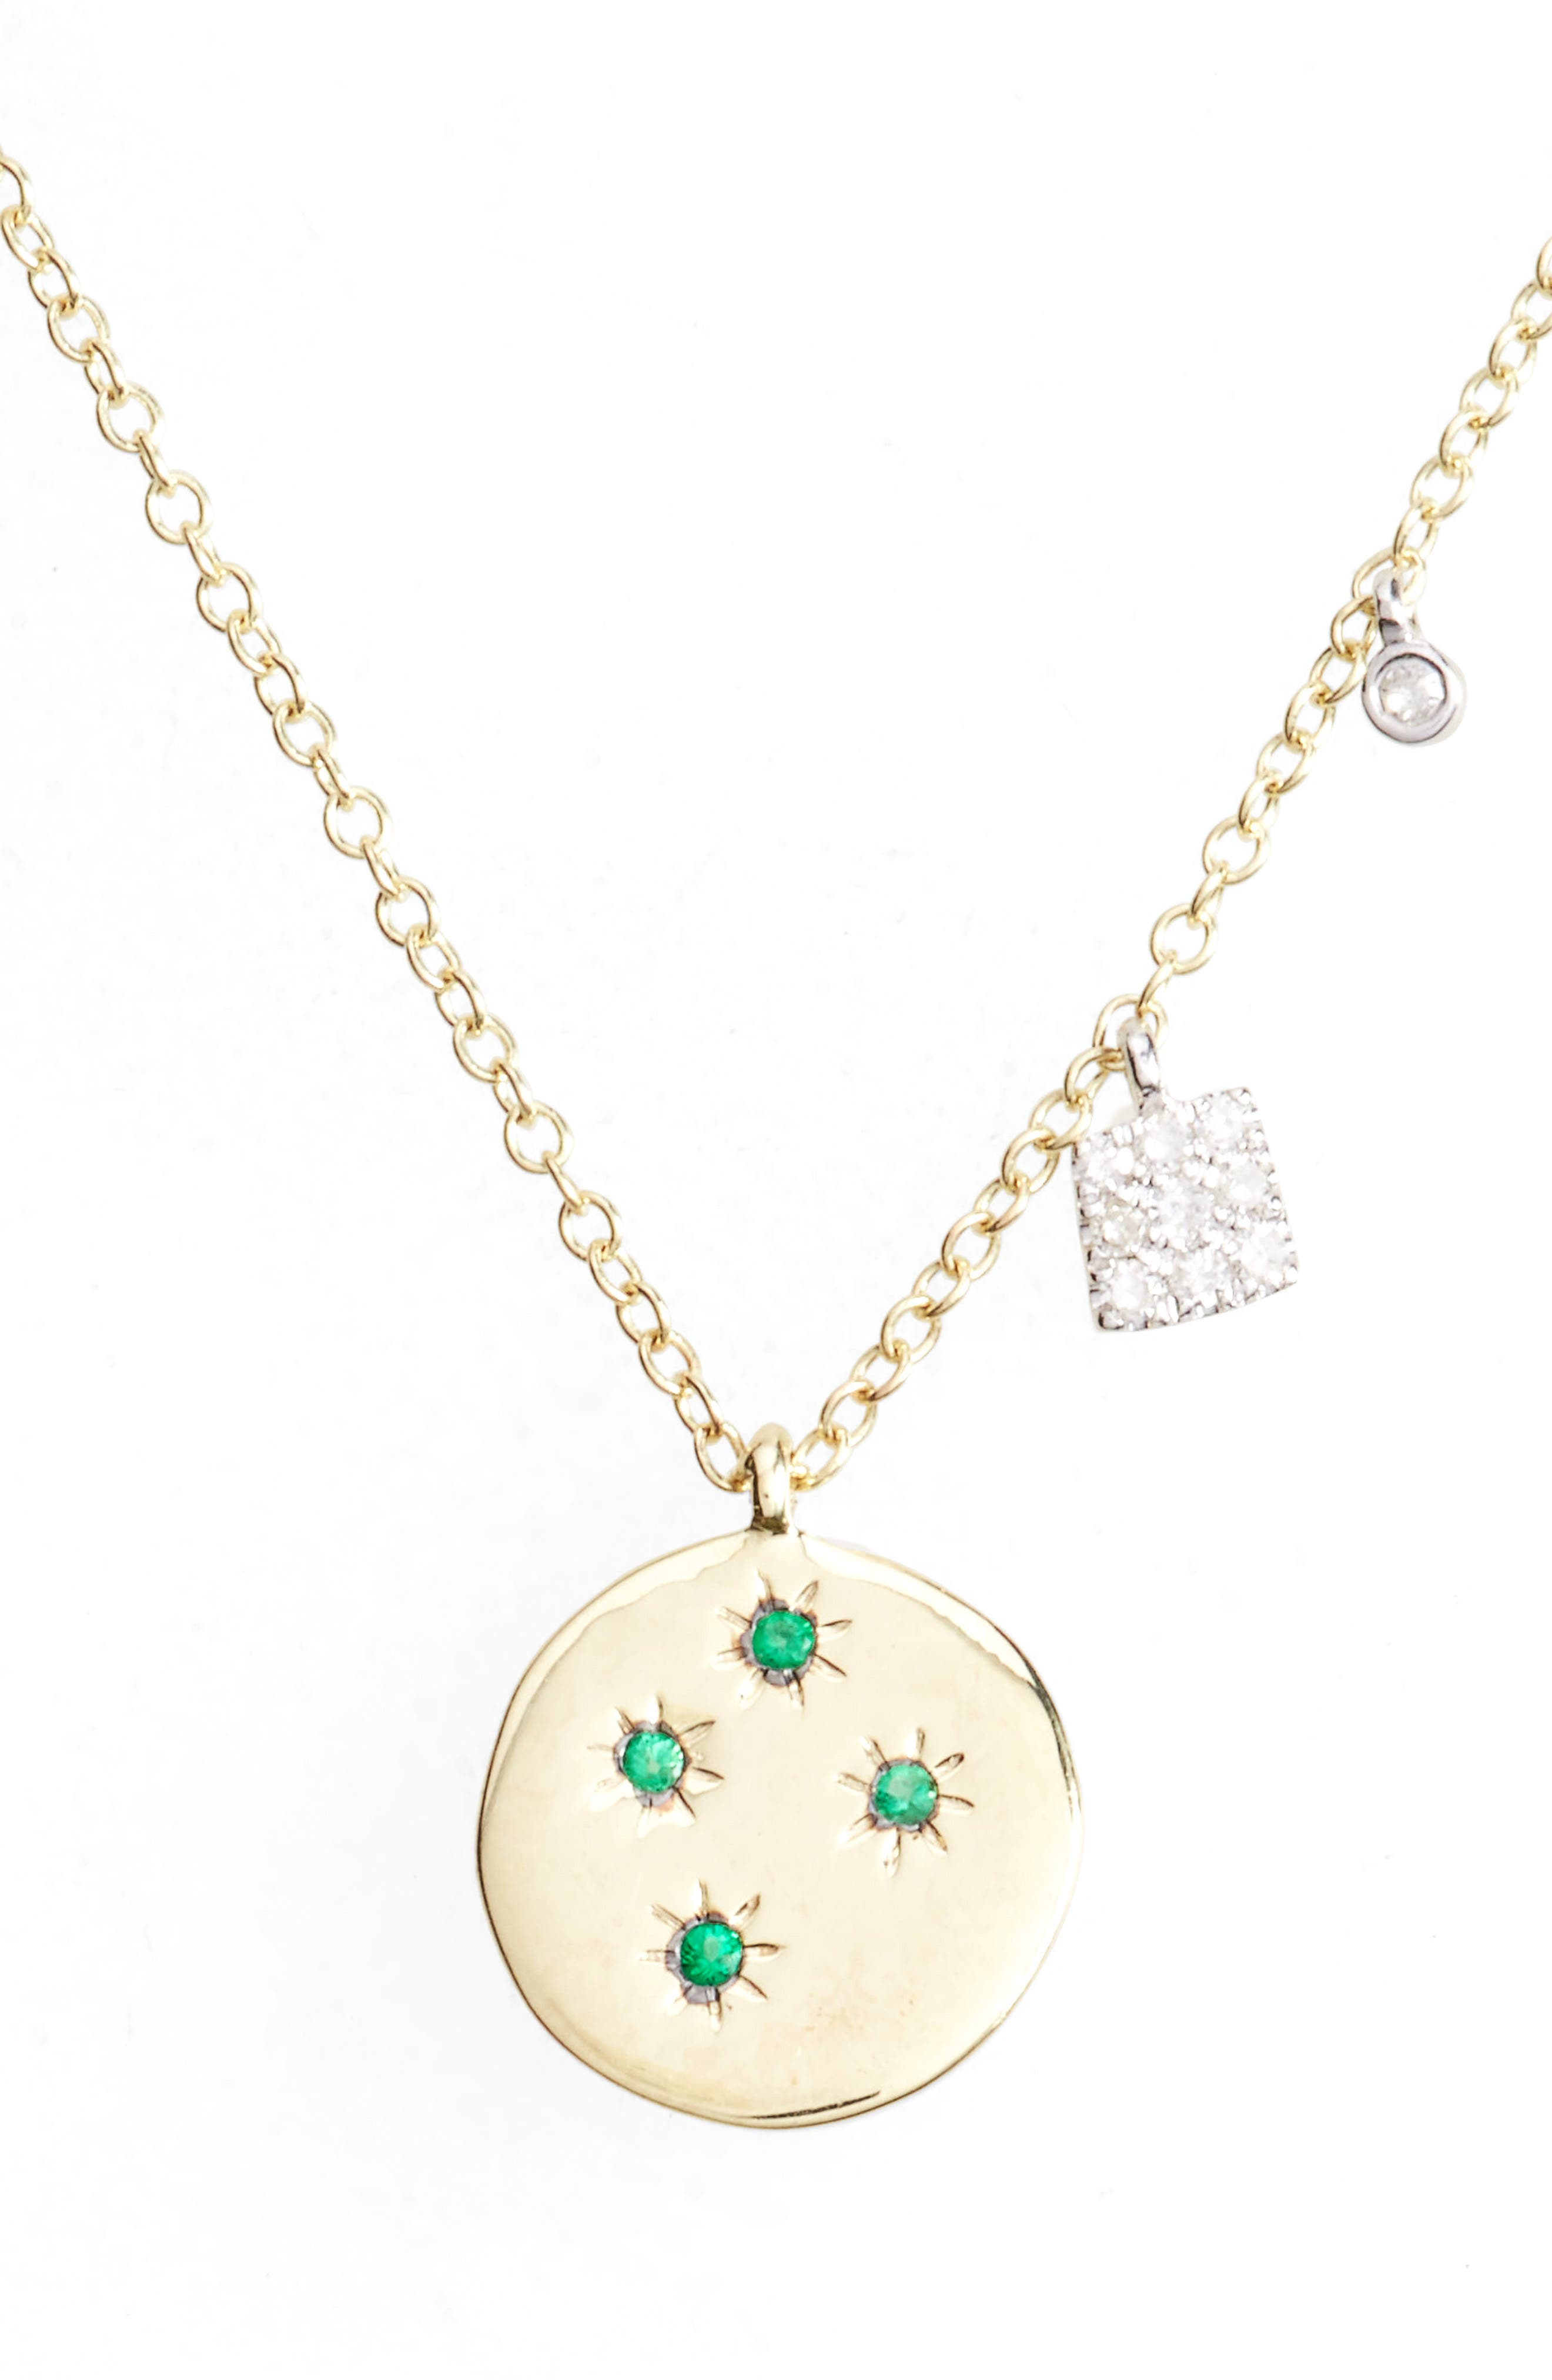 Diamond & Gemstone Pendant Necklace,                         Main,                         color, Yellow Gold/ Emerald